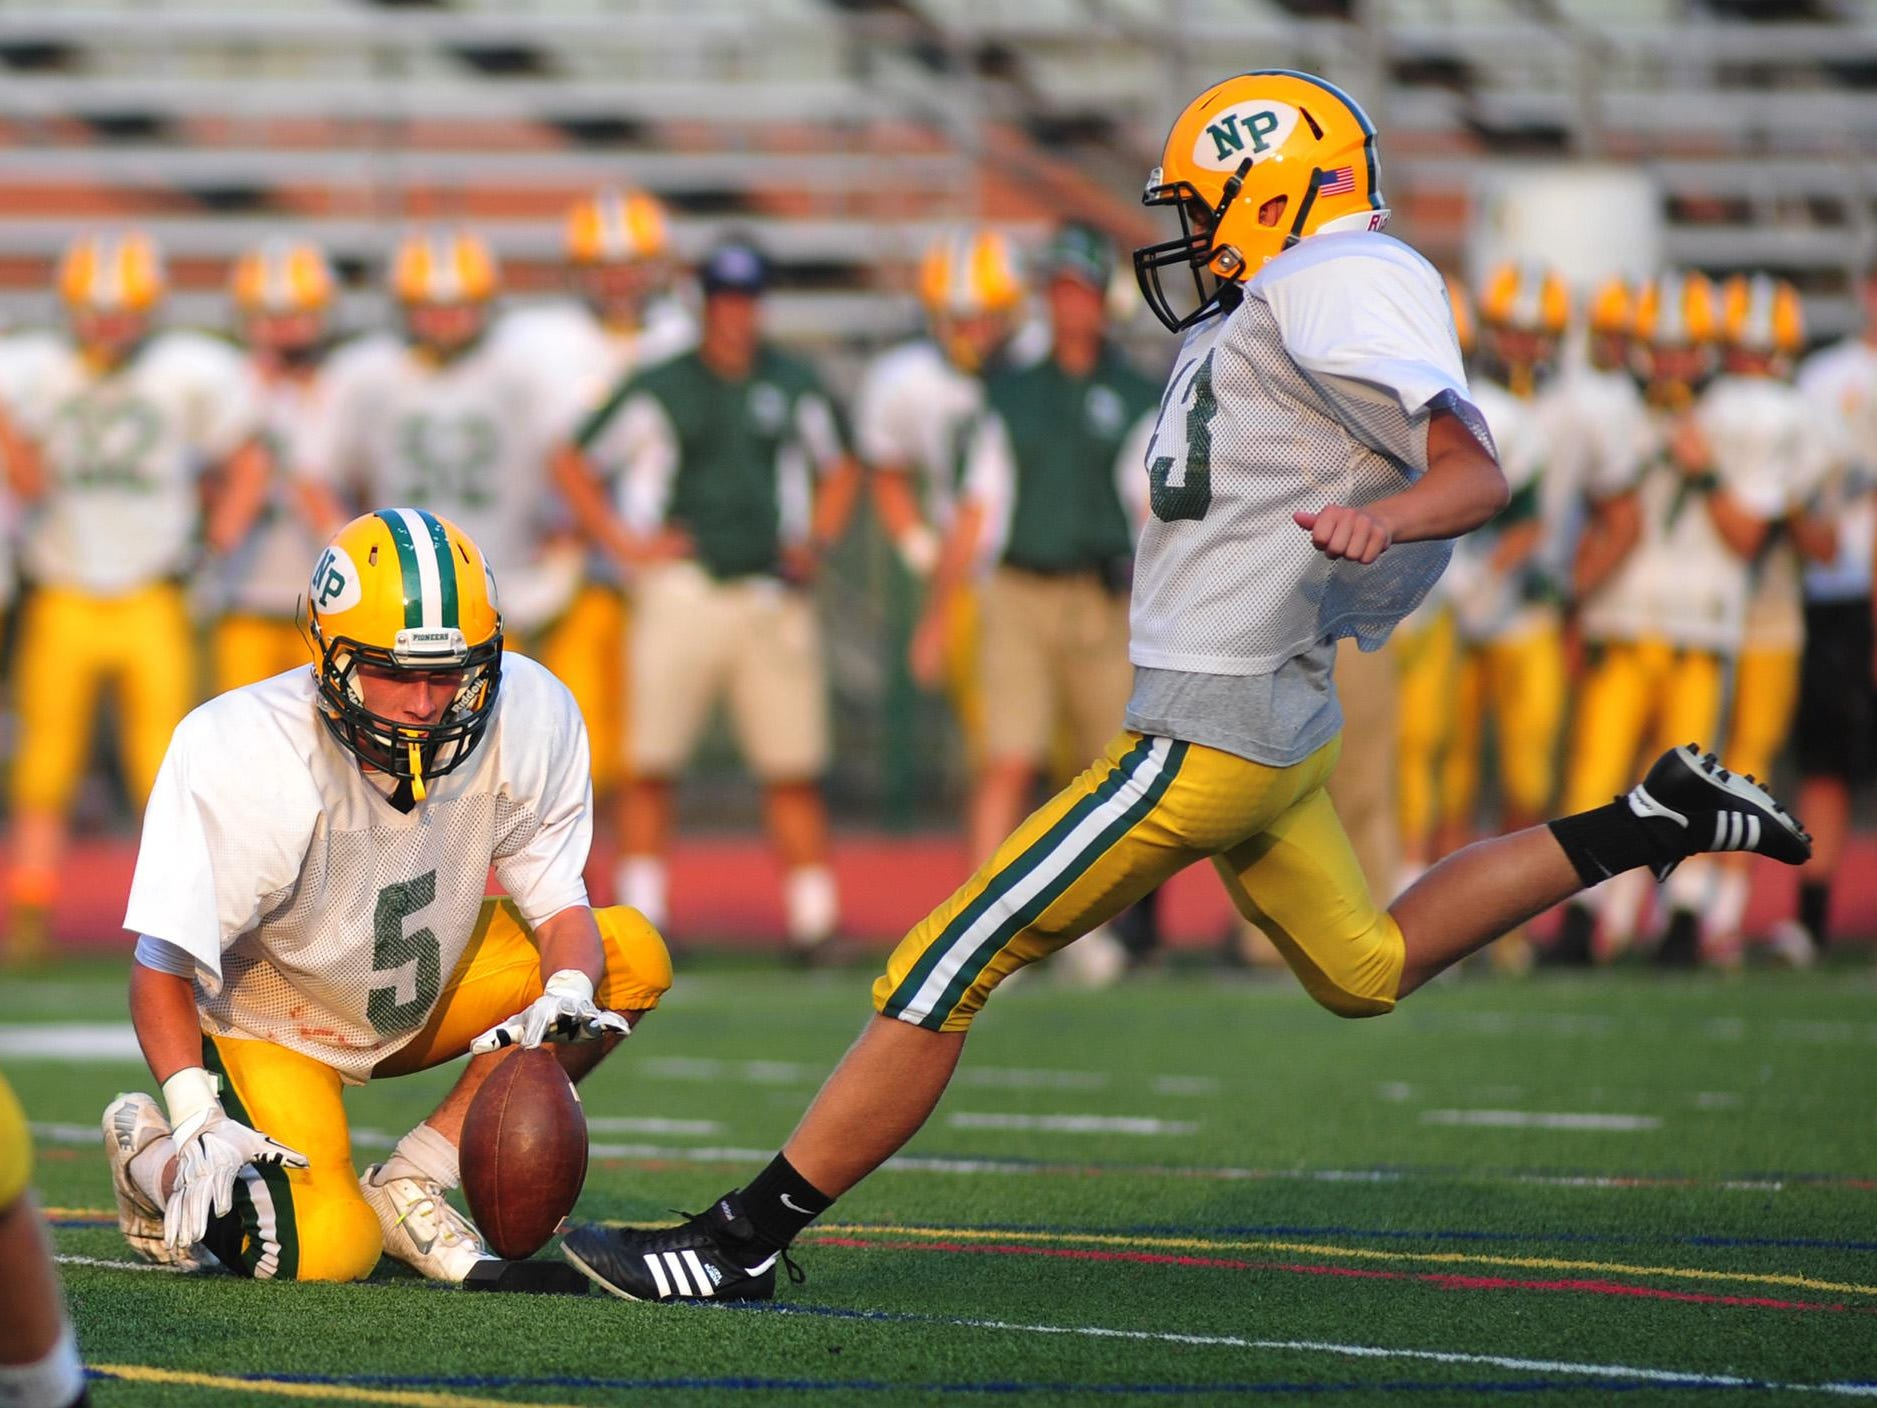 The New Providence football team is currently 7-0 and second in the Valley Division behind Brearley.